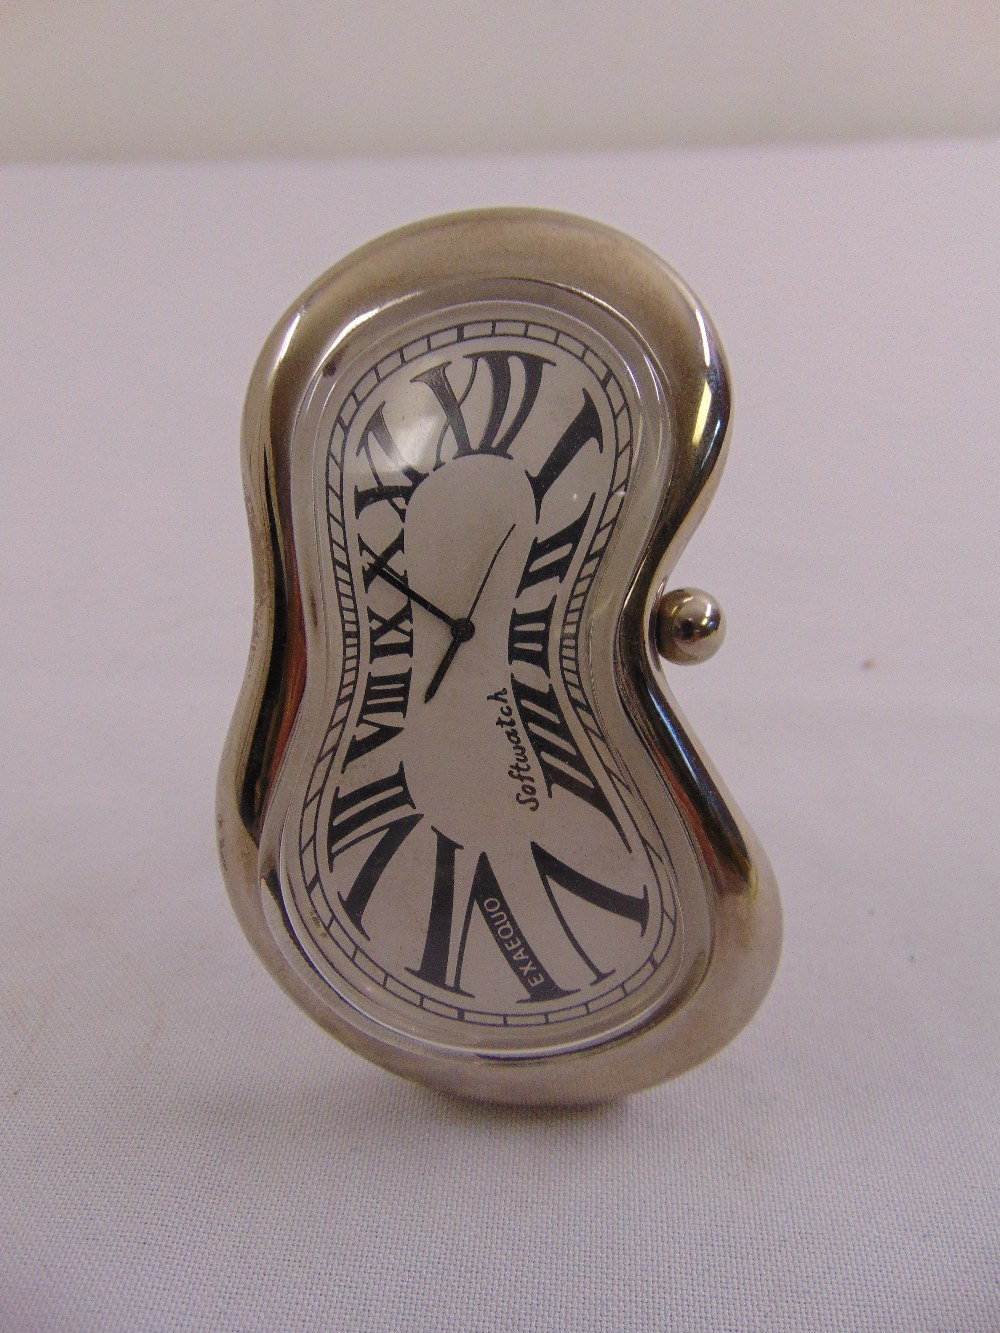 Lot 319 - Salvador Dali inspired softwatch desk watch in silver plated frame with hinged back strut by